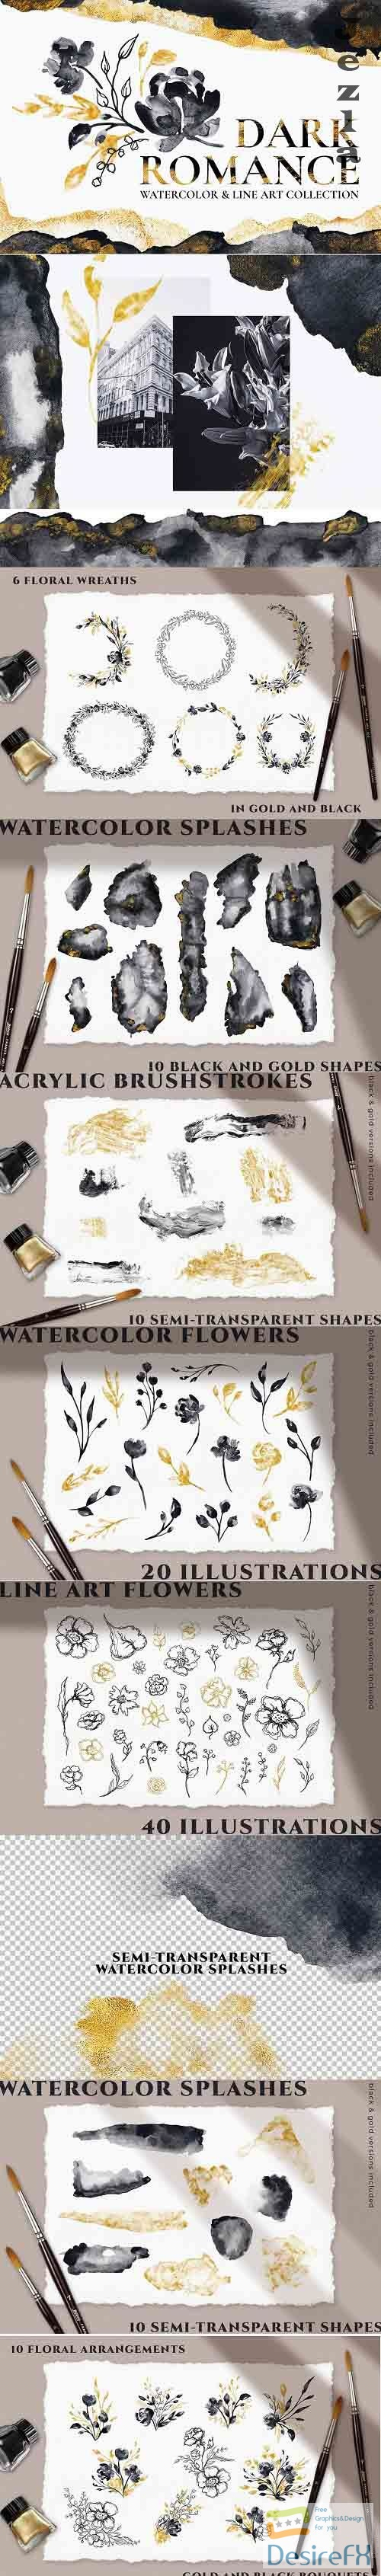 Gold Watercolor Flower Illustrations - 5827585